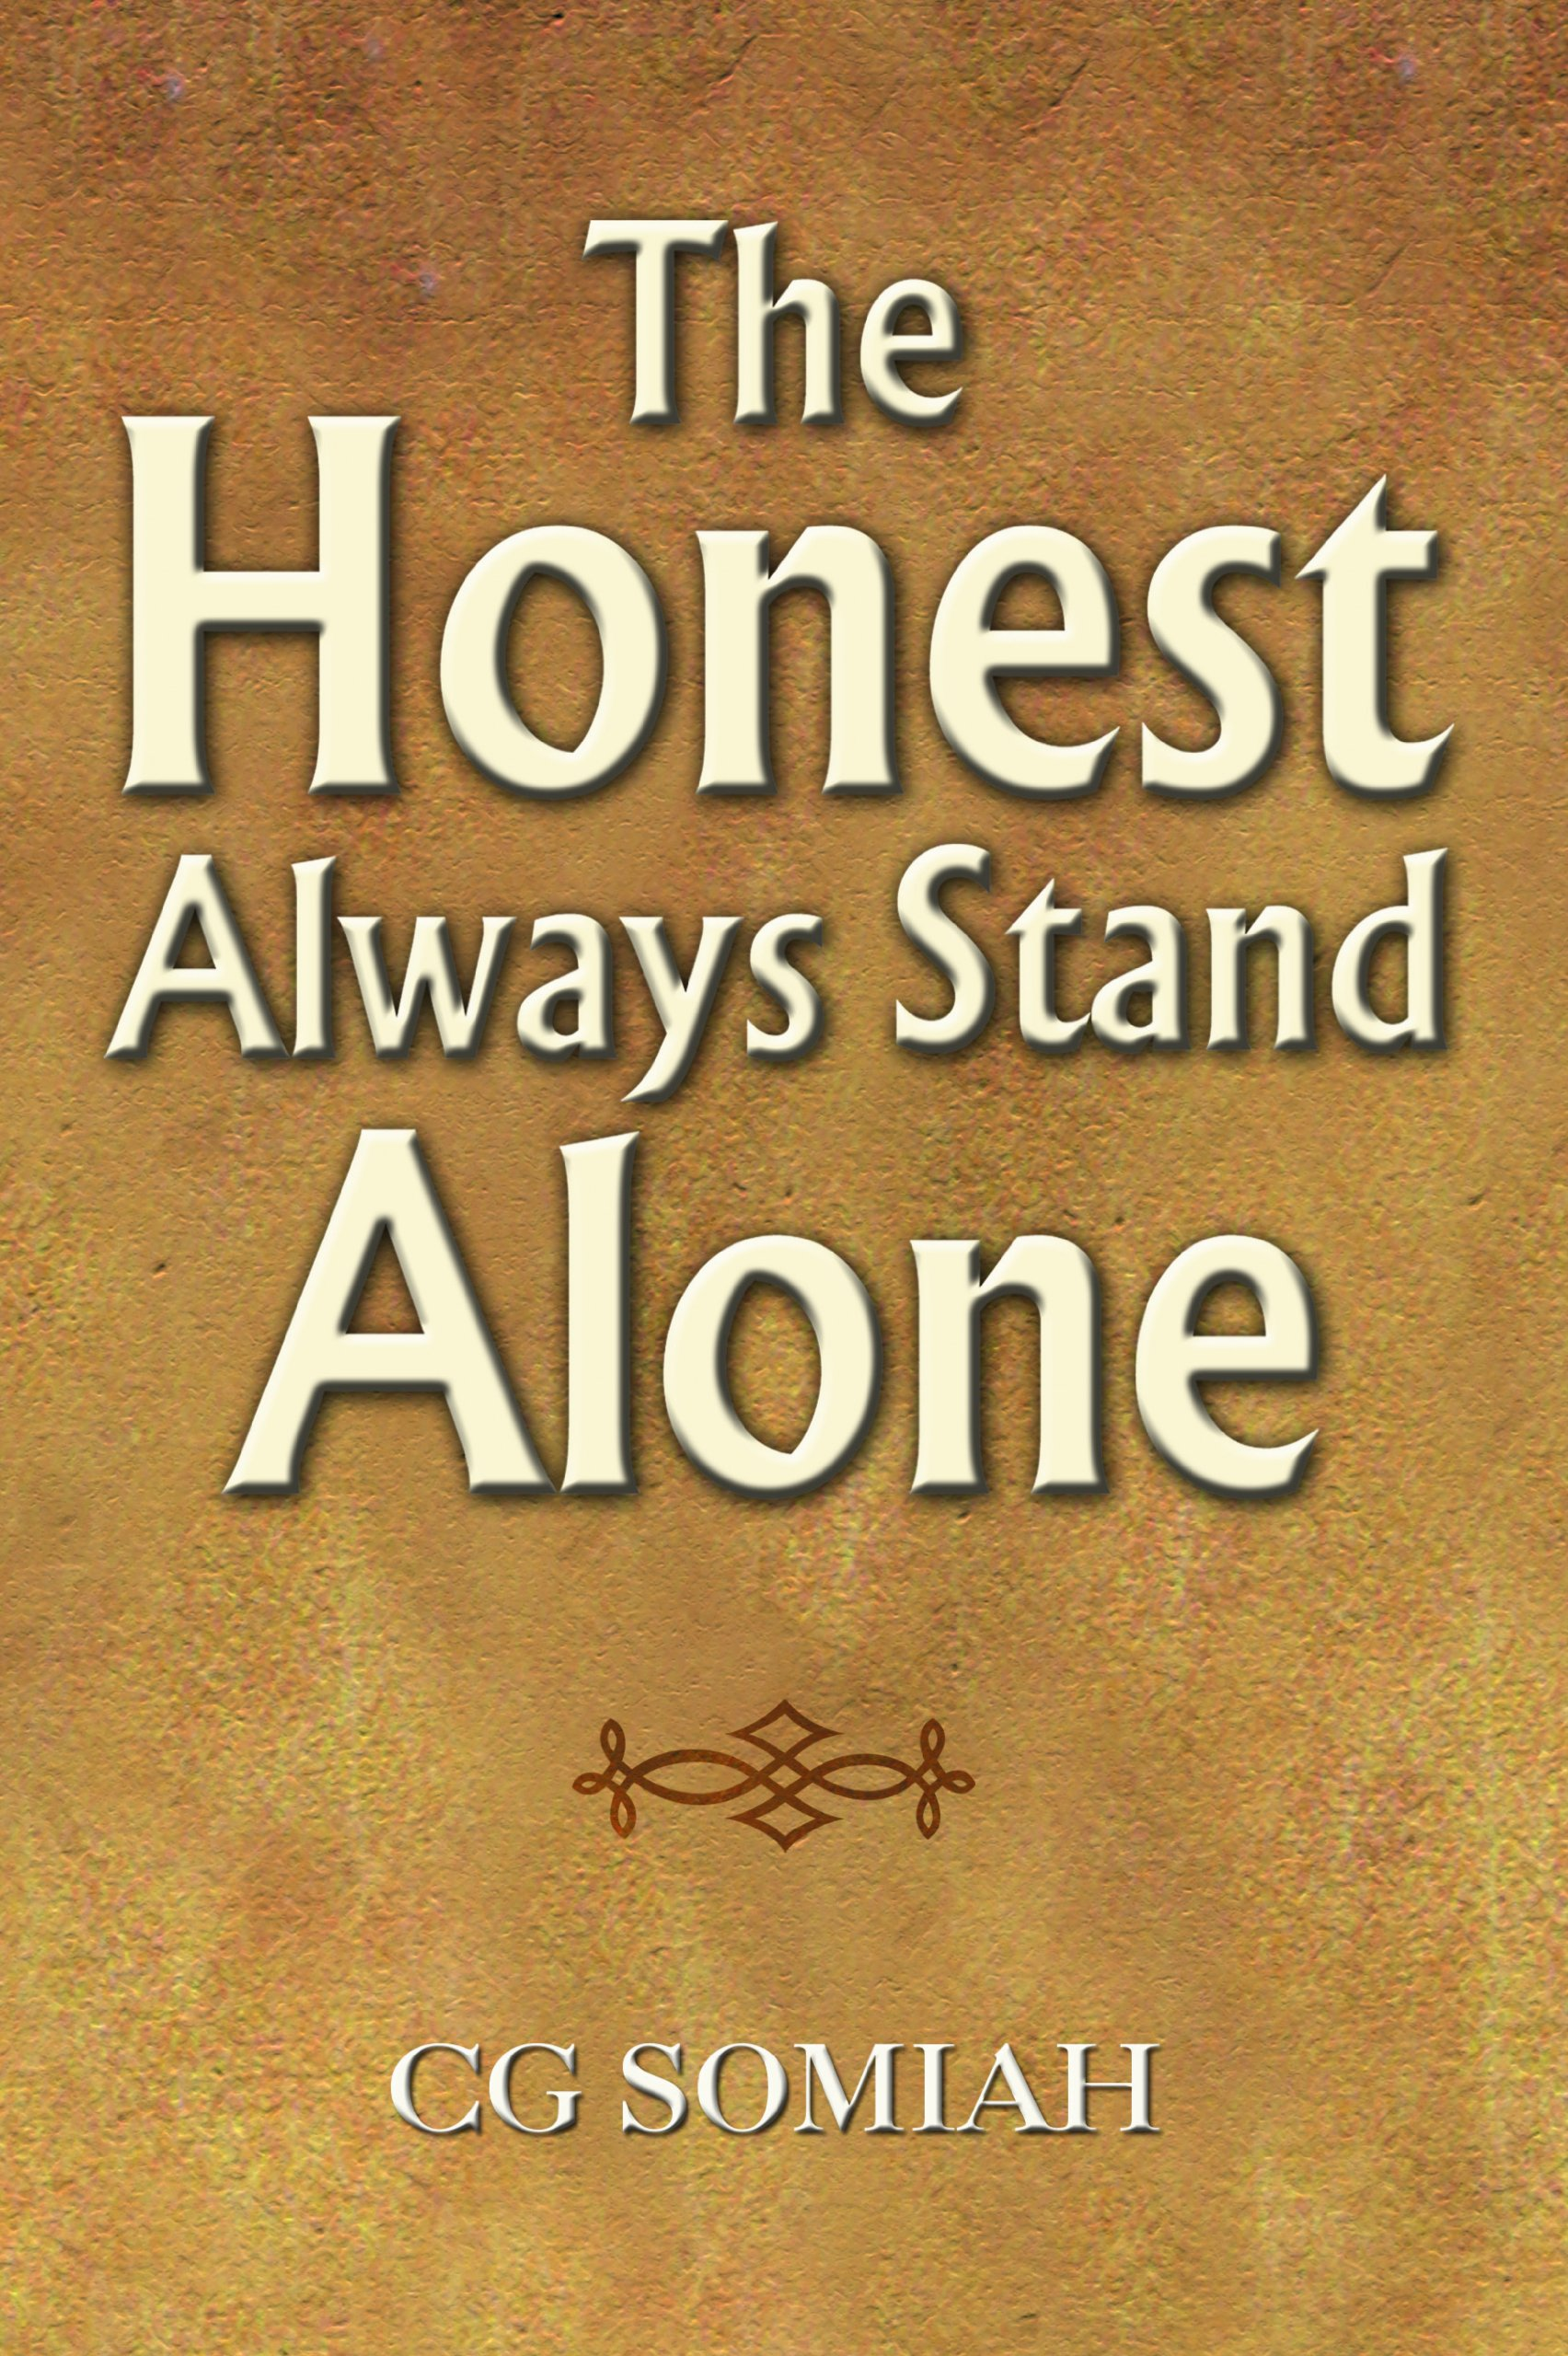 Buy The Honest Always Stand Alone Book Online at Low Prices in India ...